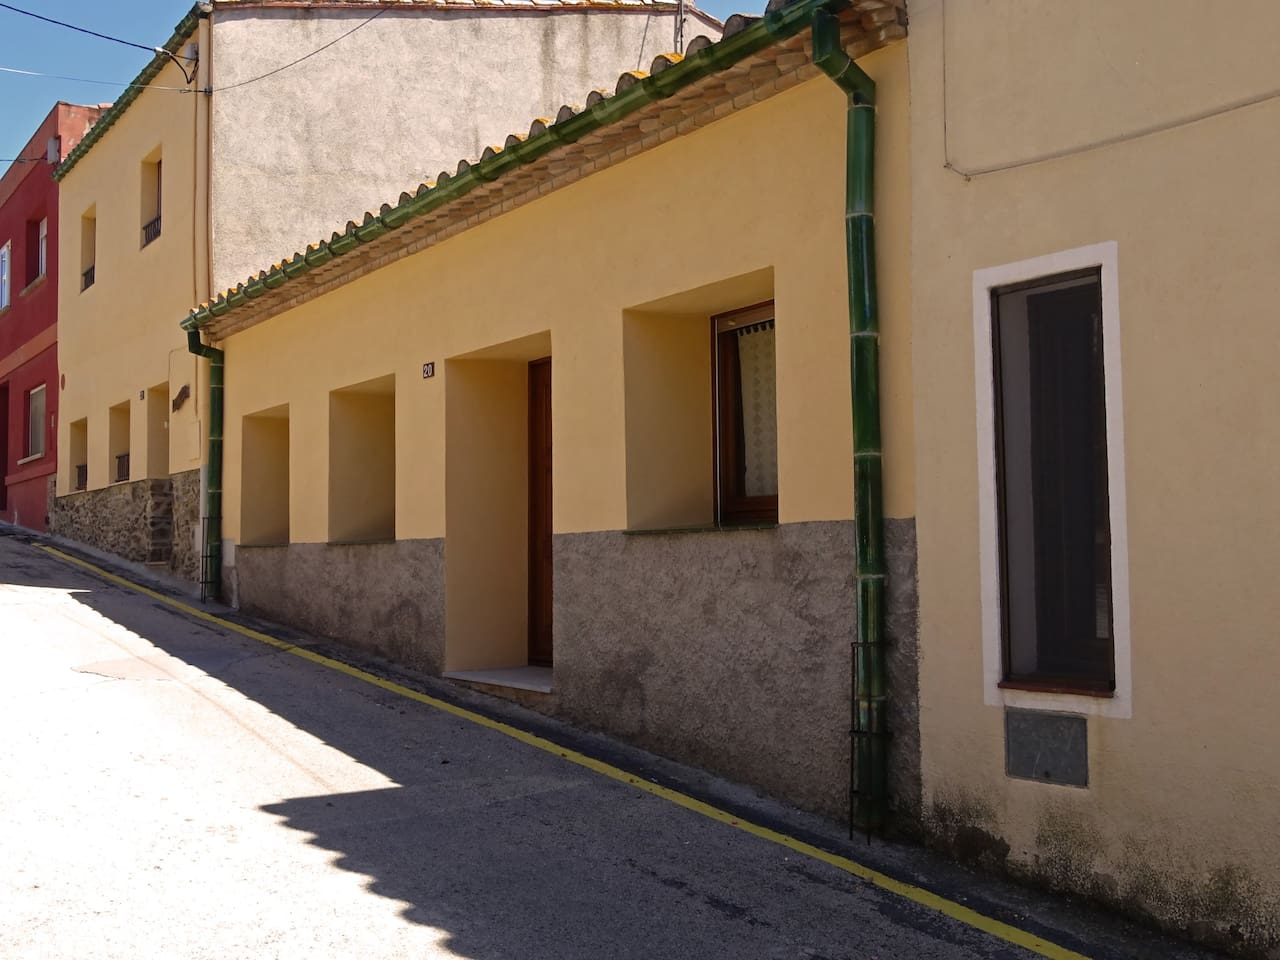 Access from the street